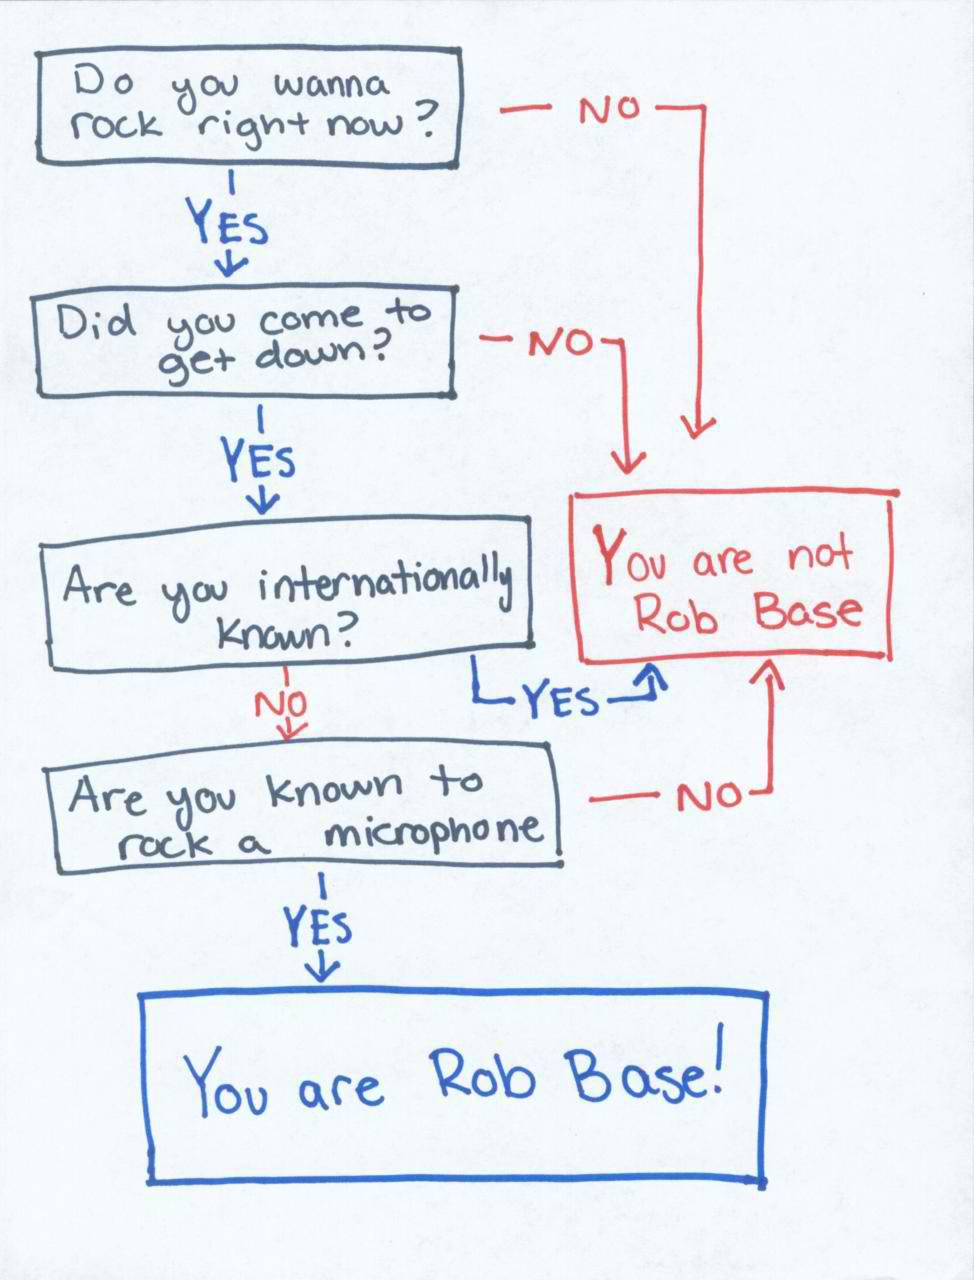 Are you Rob Base?